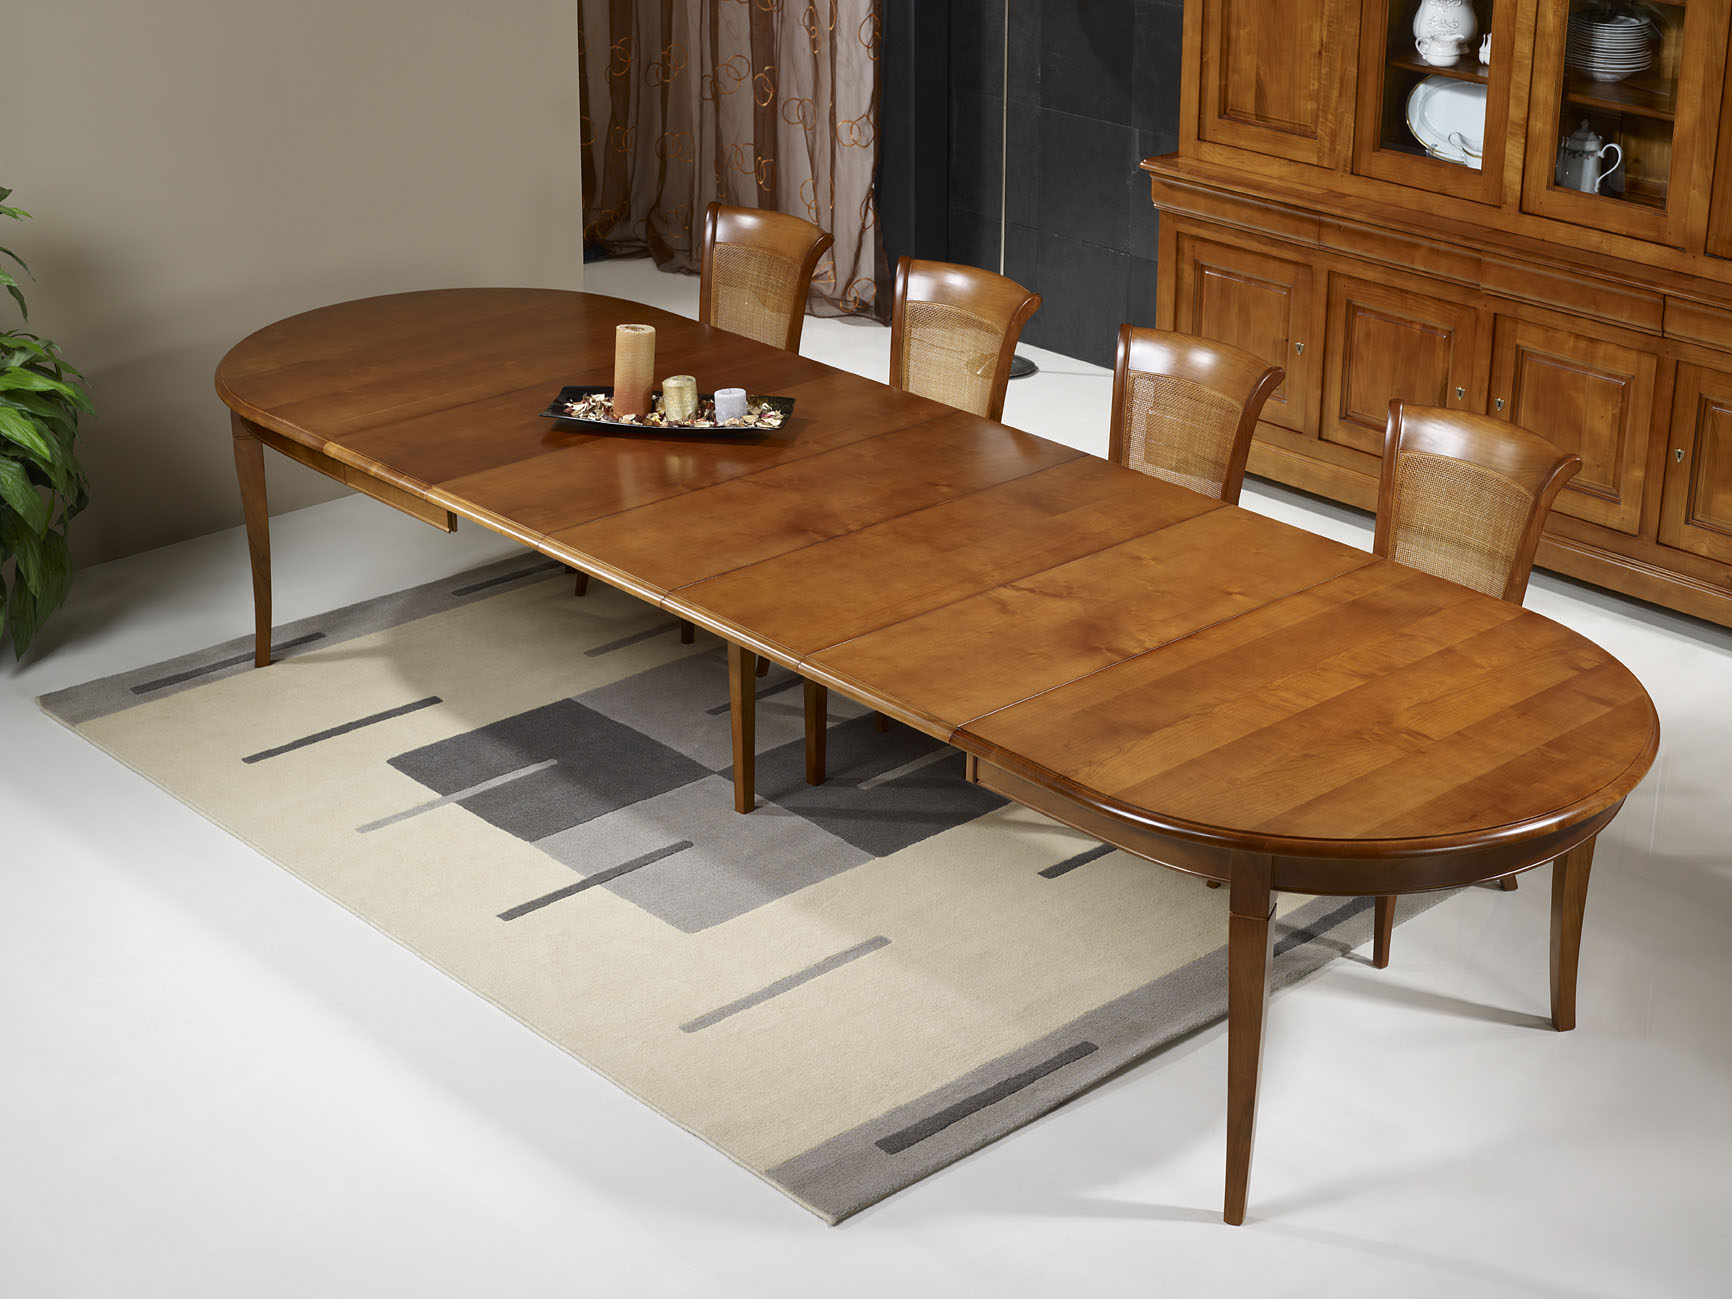 Table ovale julie 180x120 en merisier massif de style - Table 18 personnes ...